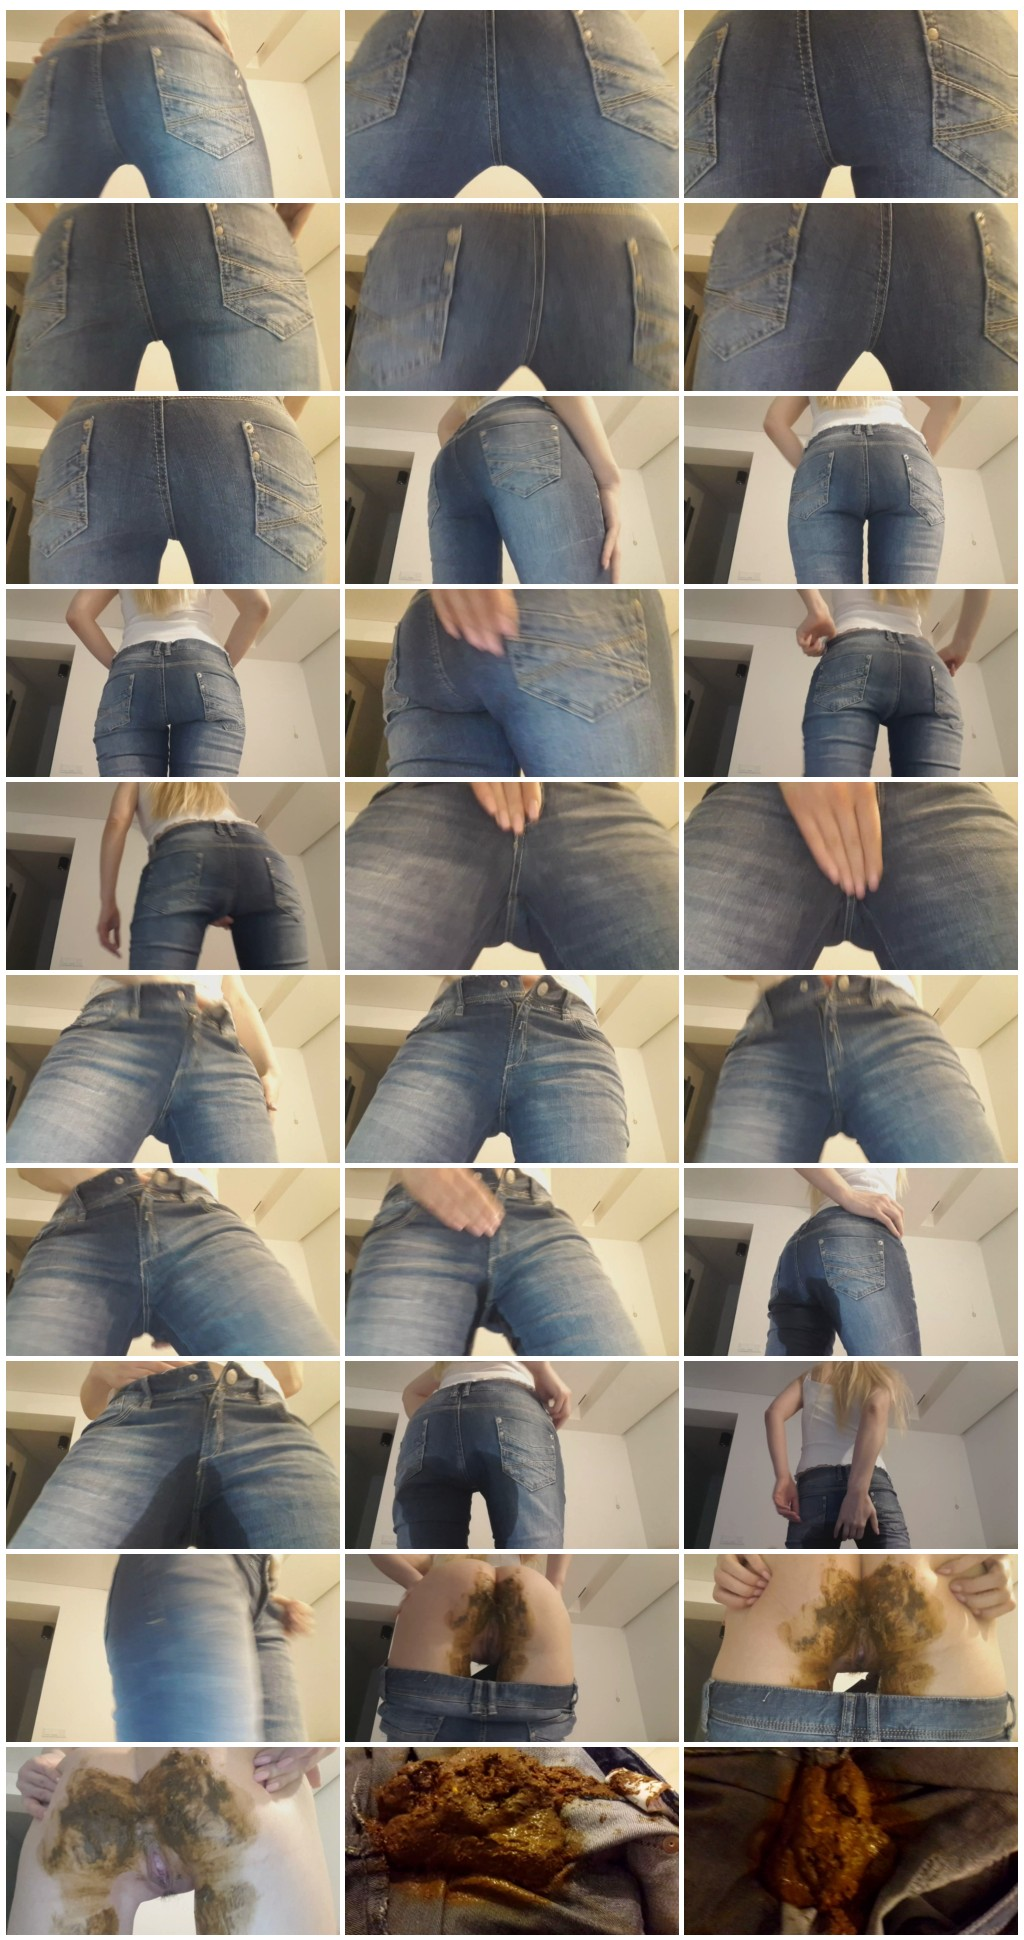 Thefartbabes - Blonde Hard Rub Jeans Poop [Scat, shit,defecation, jeans in shit, piss,smearing, shitty ass, masturbation]